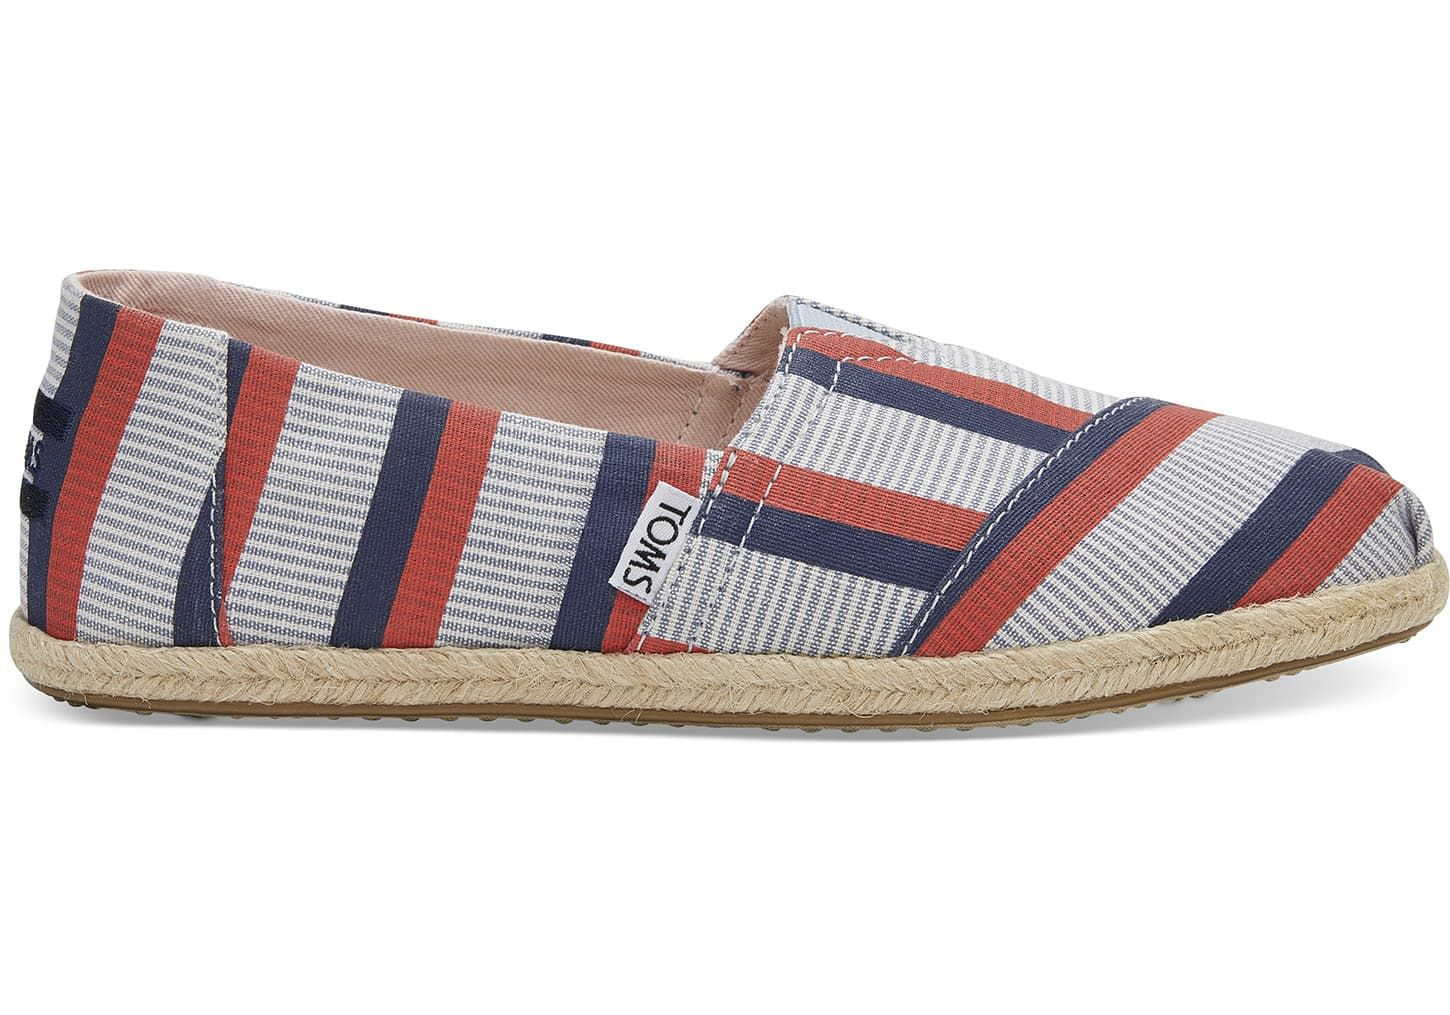 Clare V. Red Navy Stripe Women s Classics   TOMS®   Size 9.5   Just ... d9604fb9f1